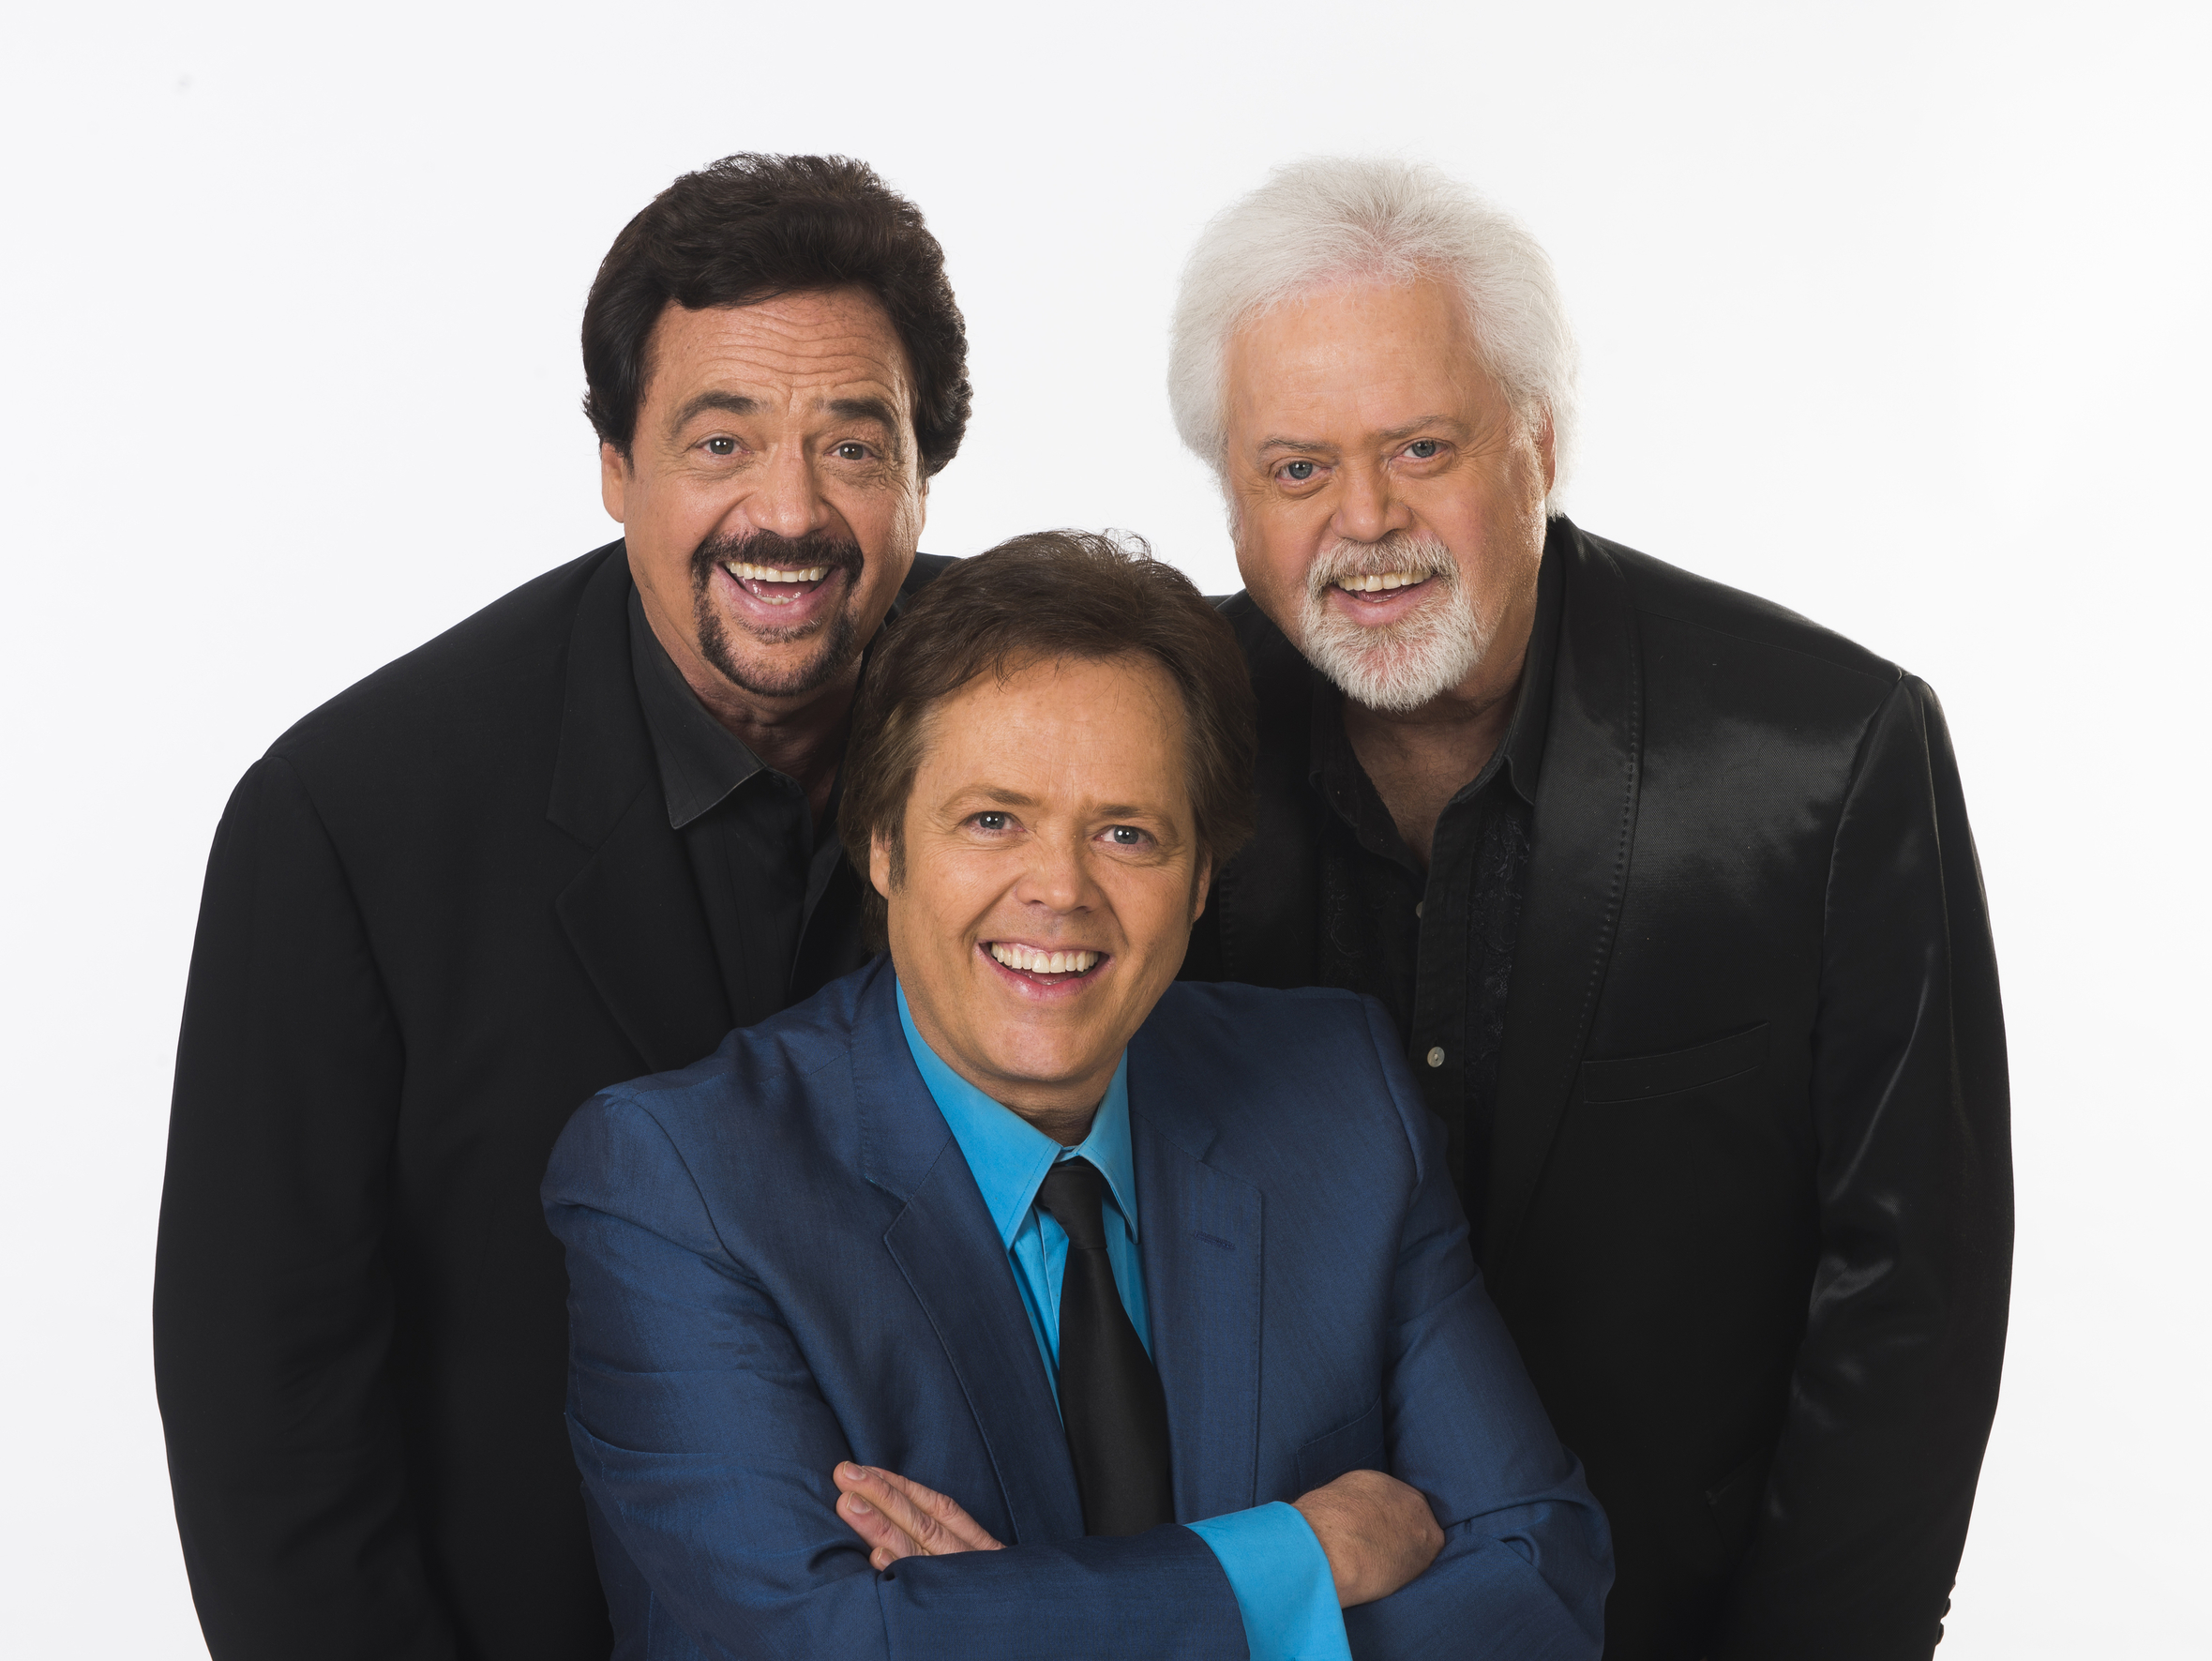 Legends - The Osmonds perform today